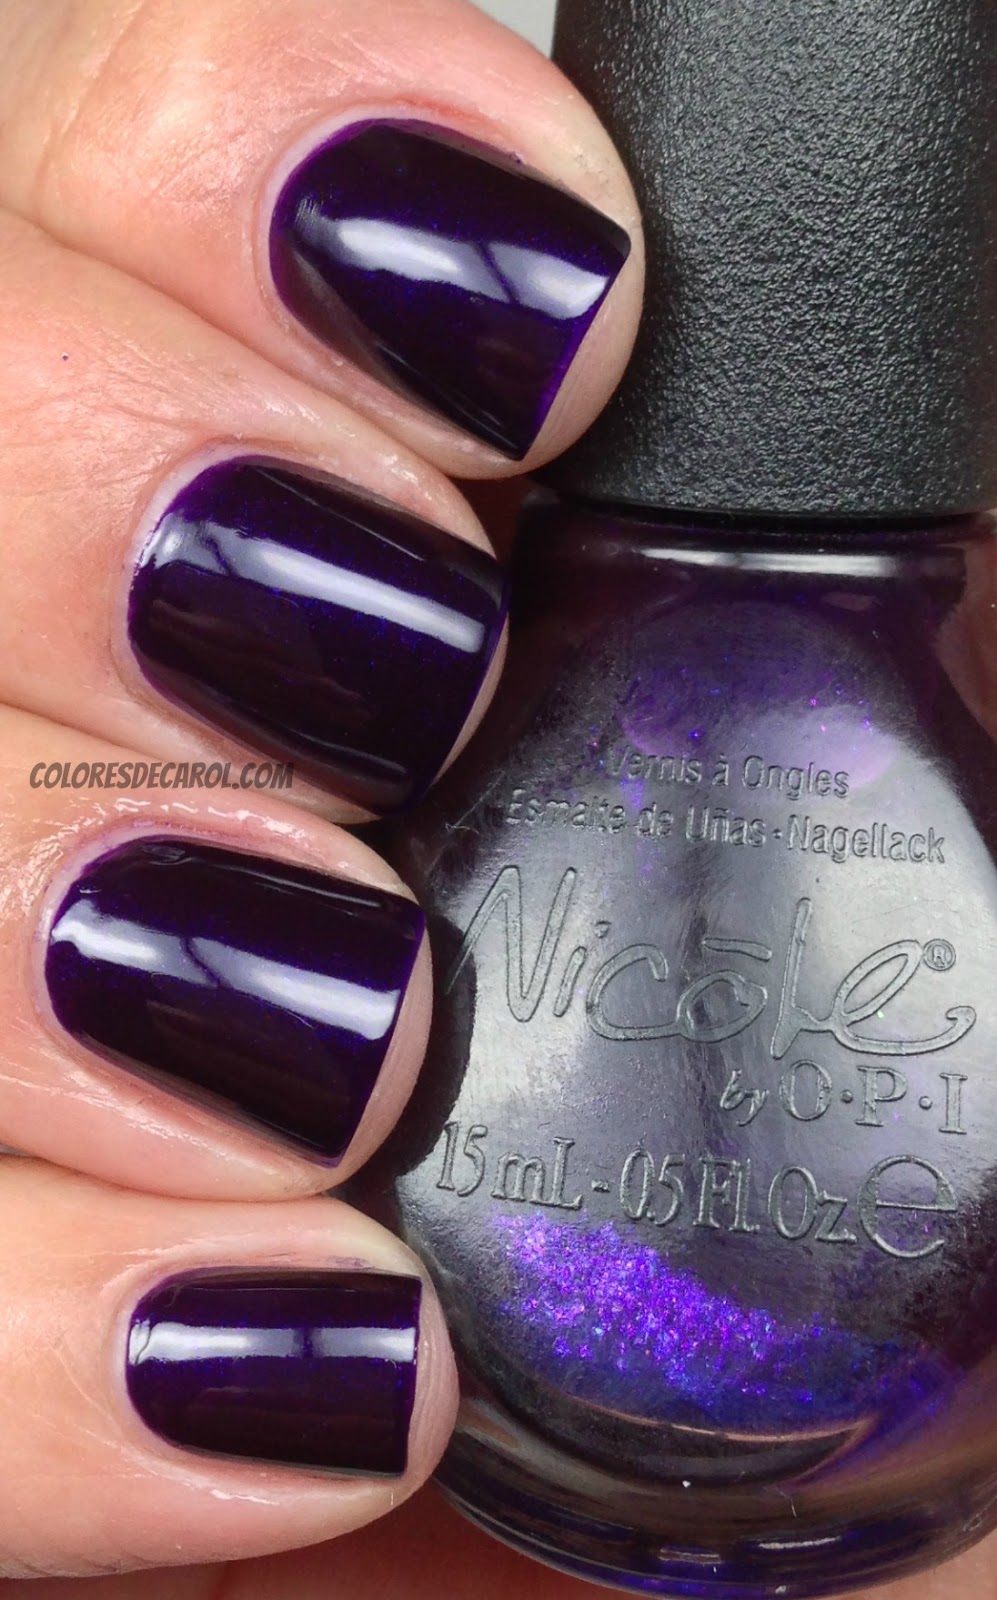 Colores de Carol: Nicole by OPI - Plum To Your Senses